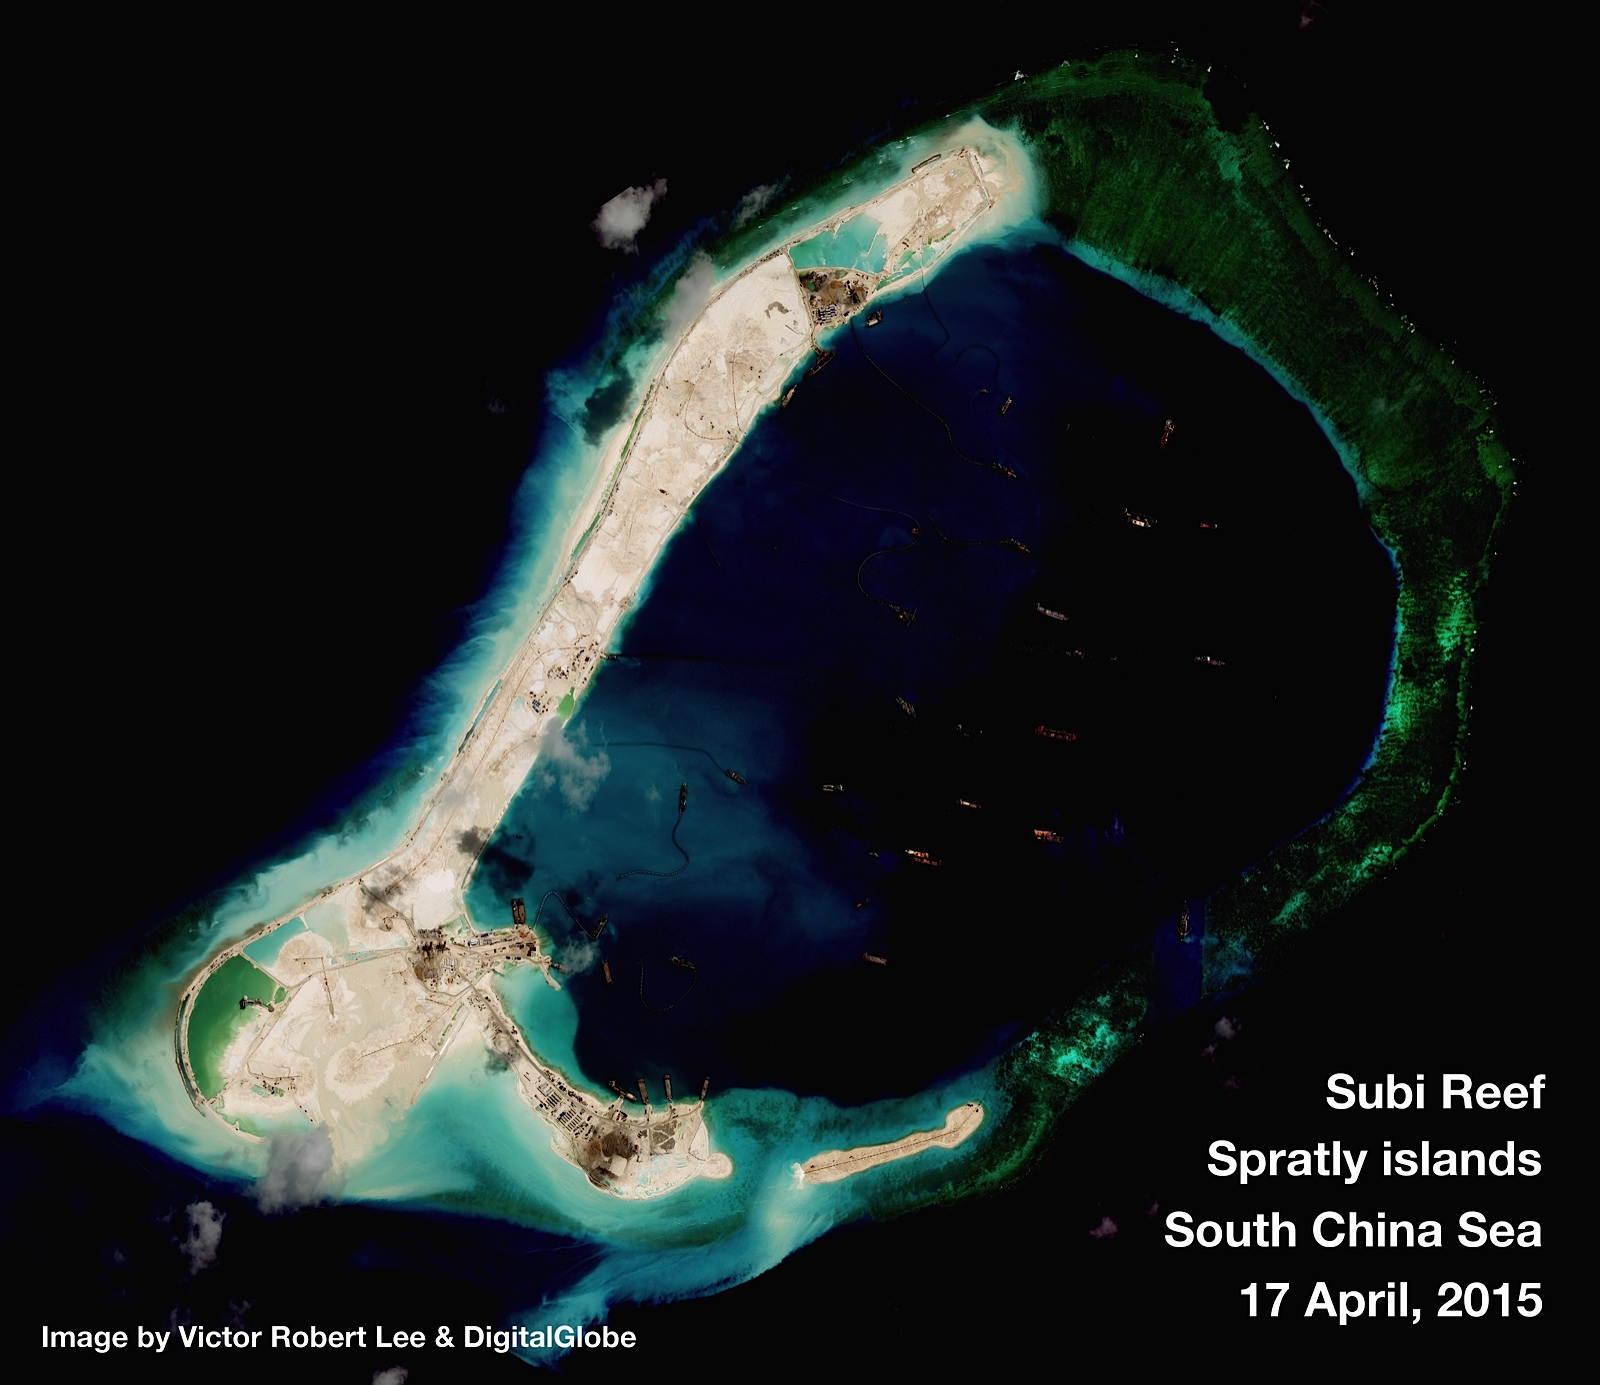 Chinese Subi Reef facilities in April 2015. Digital Globe Photo via The Diplomat